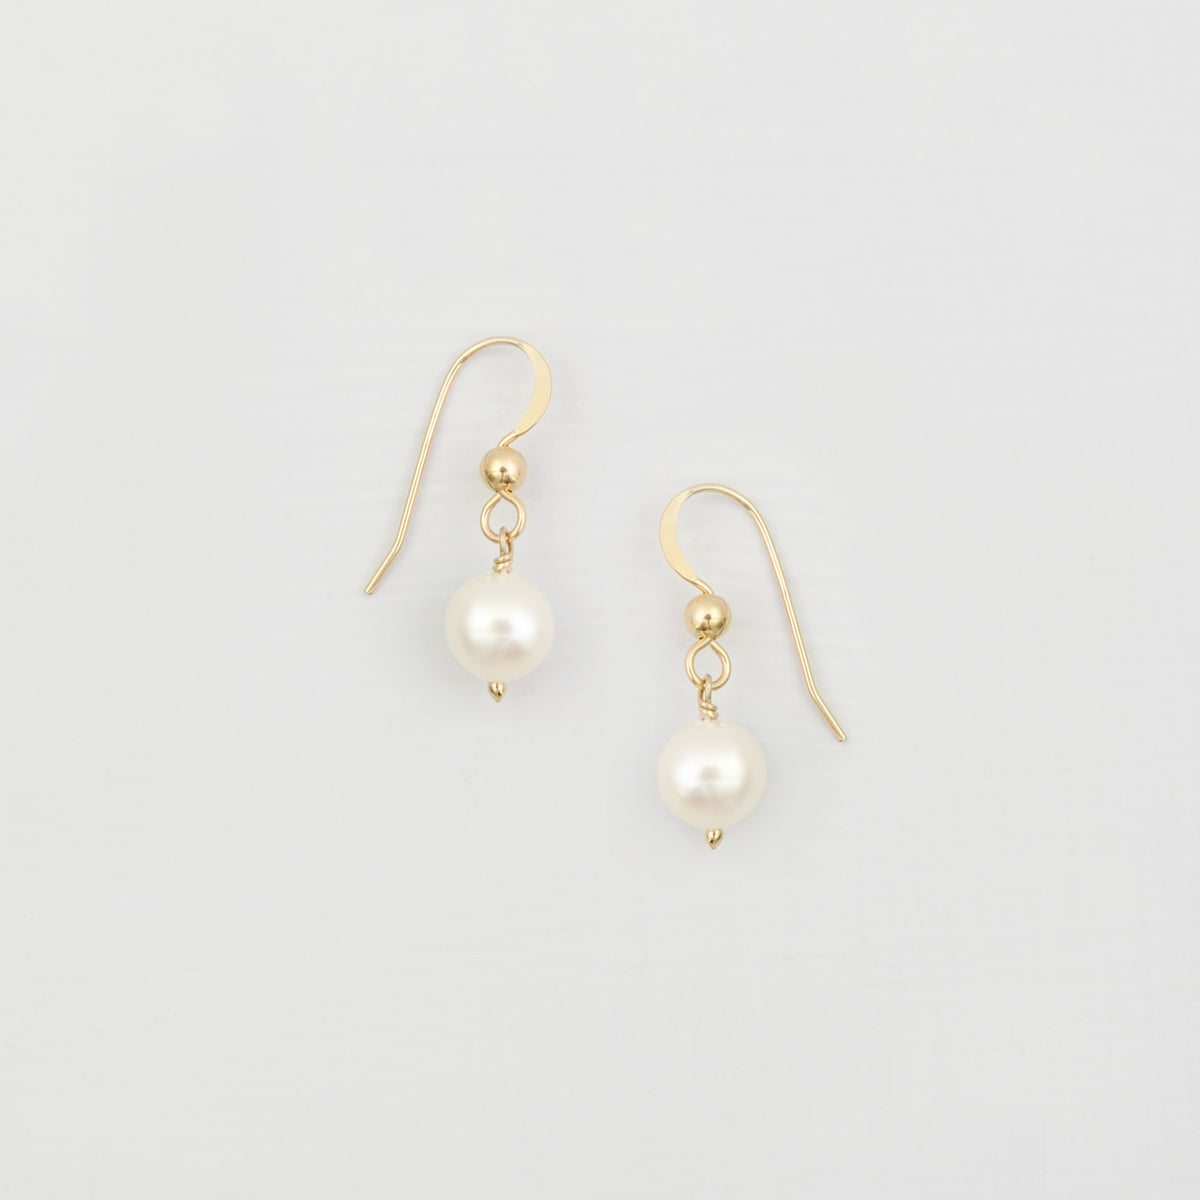 freshwater pearl drop earrings gold filled